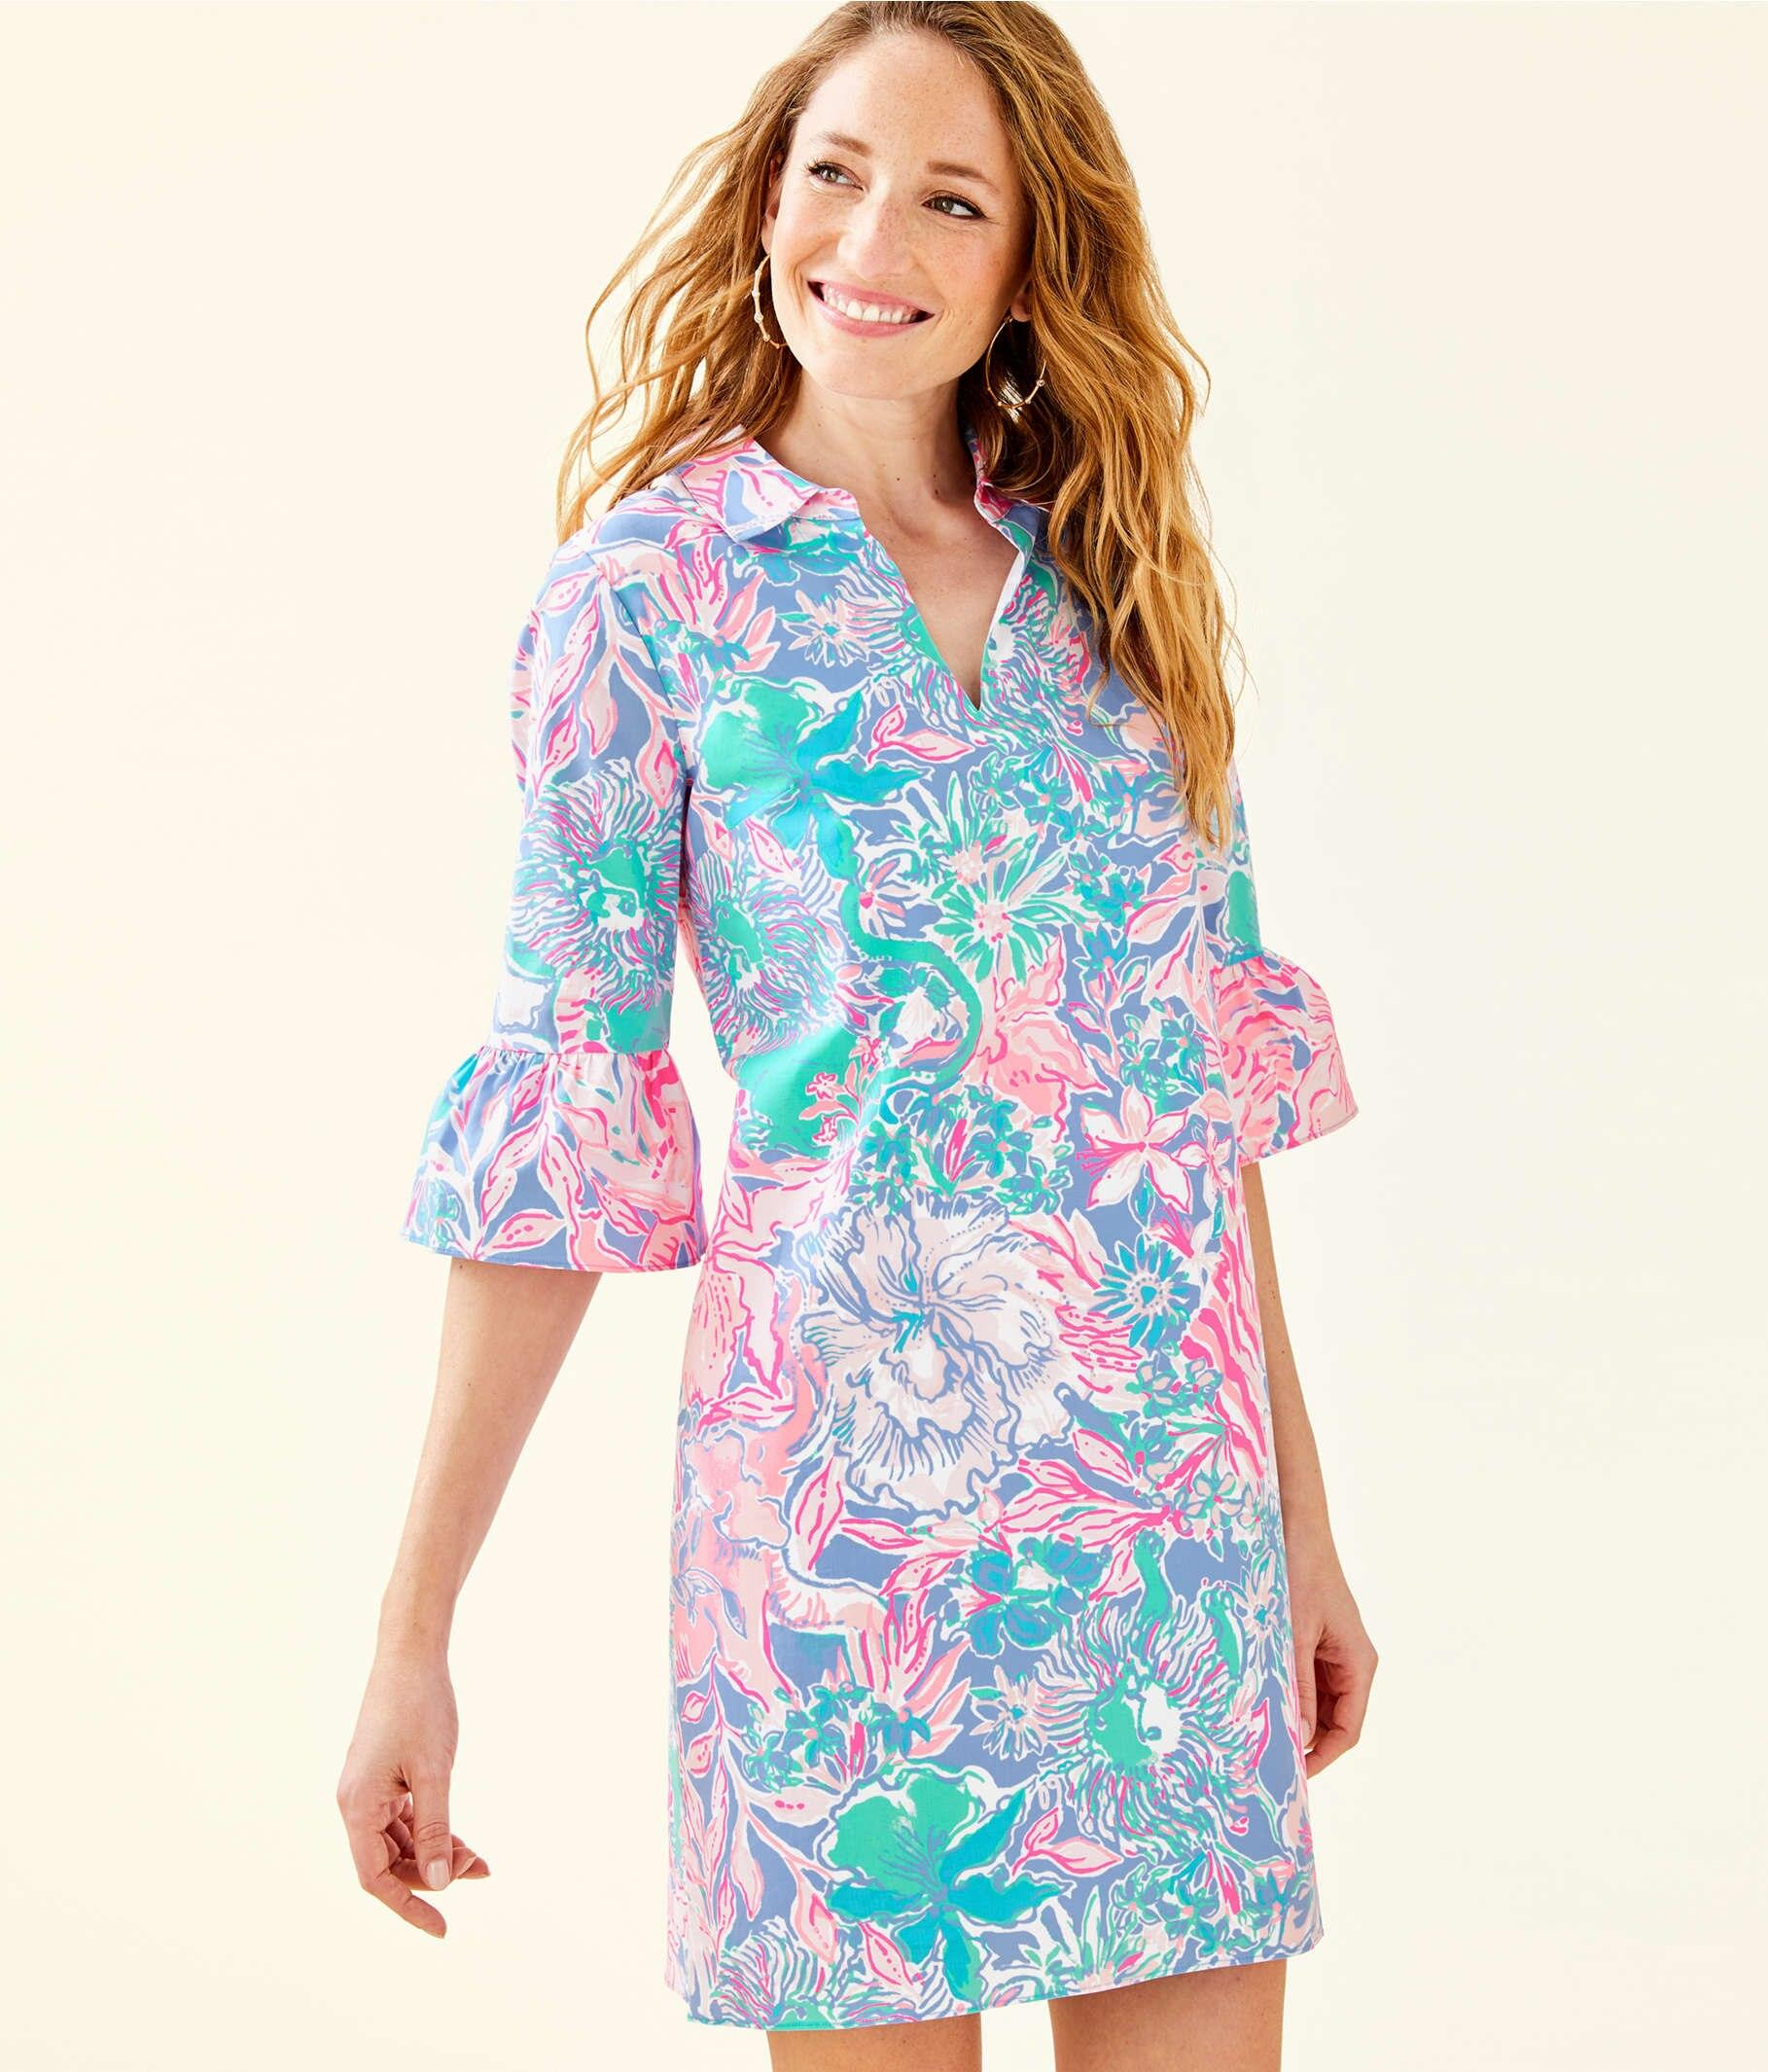 eb7441861628f7 Lilly Pulitzer Ginger Stretch Dress in Blue - Lyst